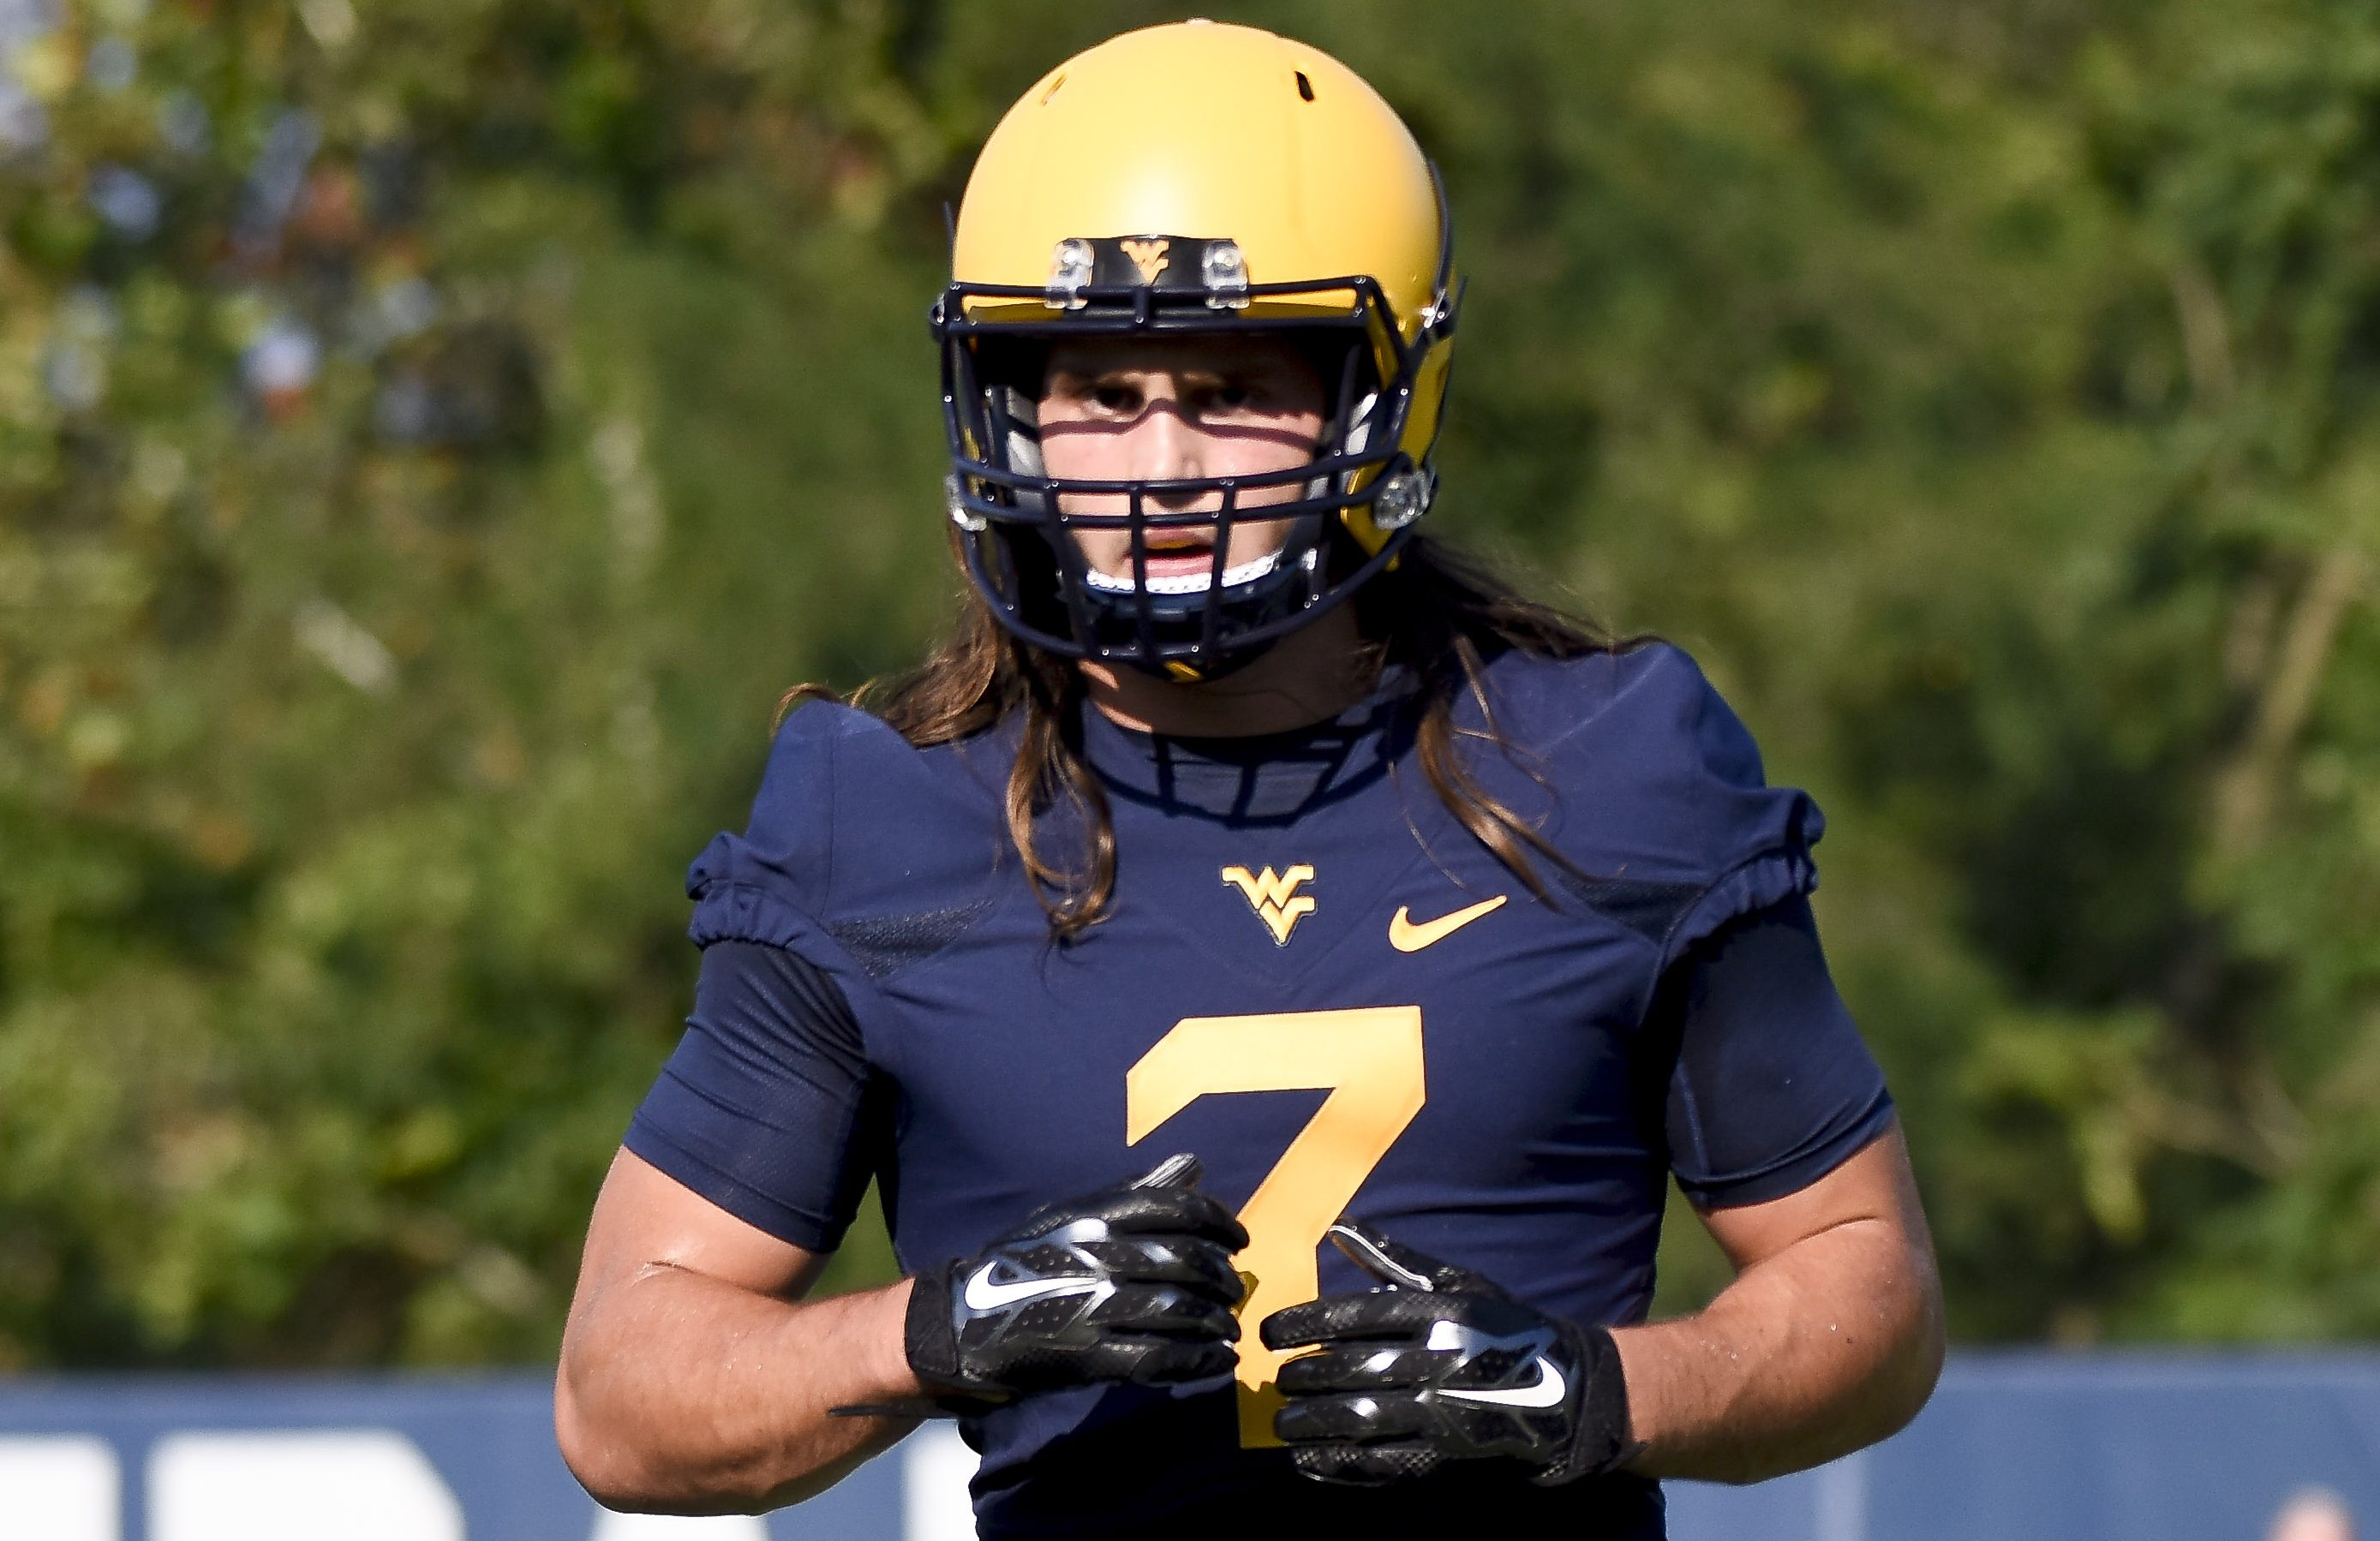 Linebacker Brendan Ferns Will Miss the Season With ACL Tear